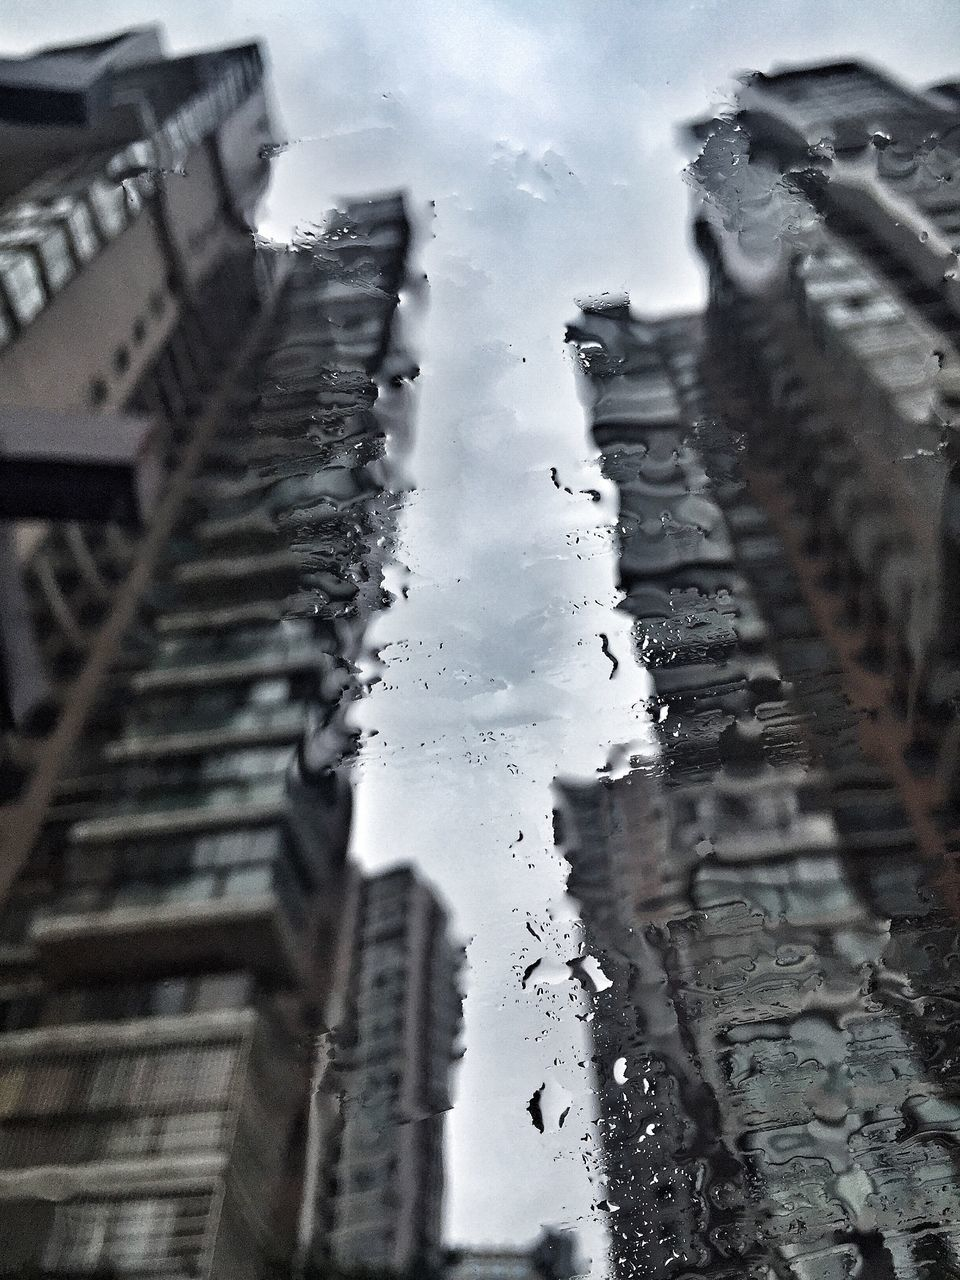 weather, architecture, building exterior, built structure, winter, no people, cold temperature, water, window, wet, day, drop, outdoors, snow, raindrop, close-up, sky, nature, dripping